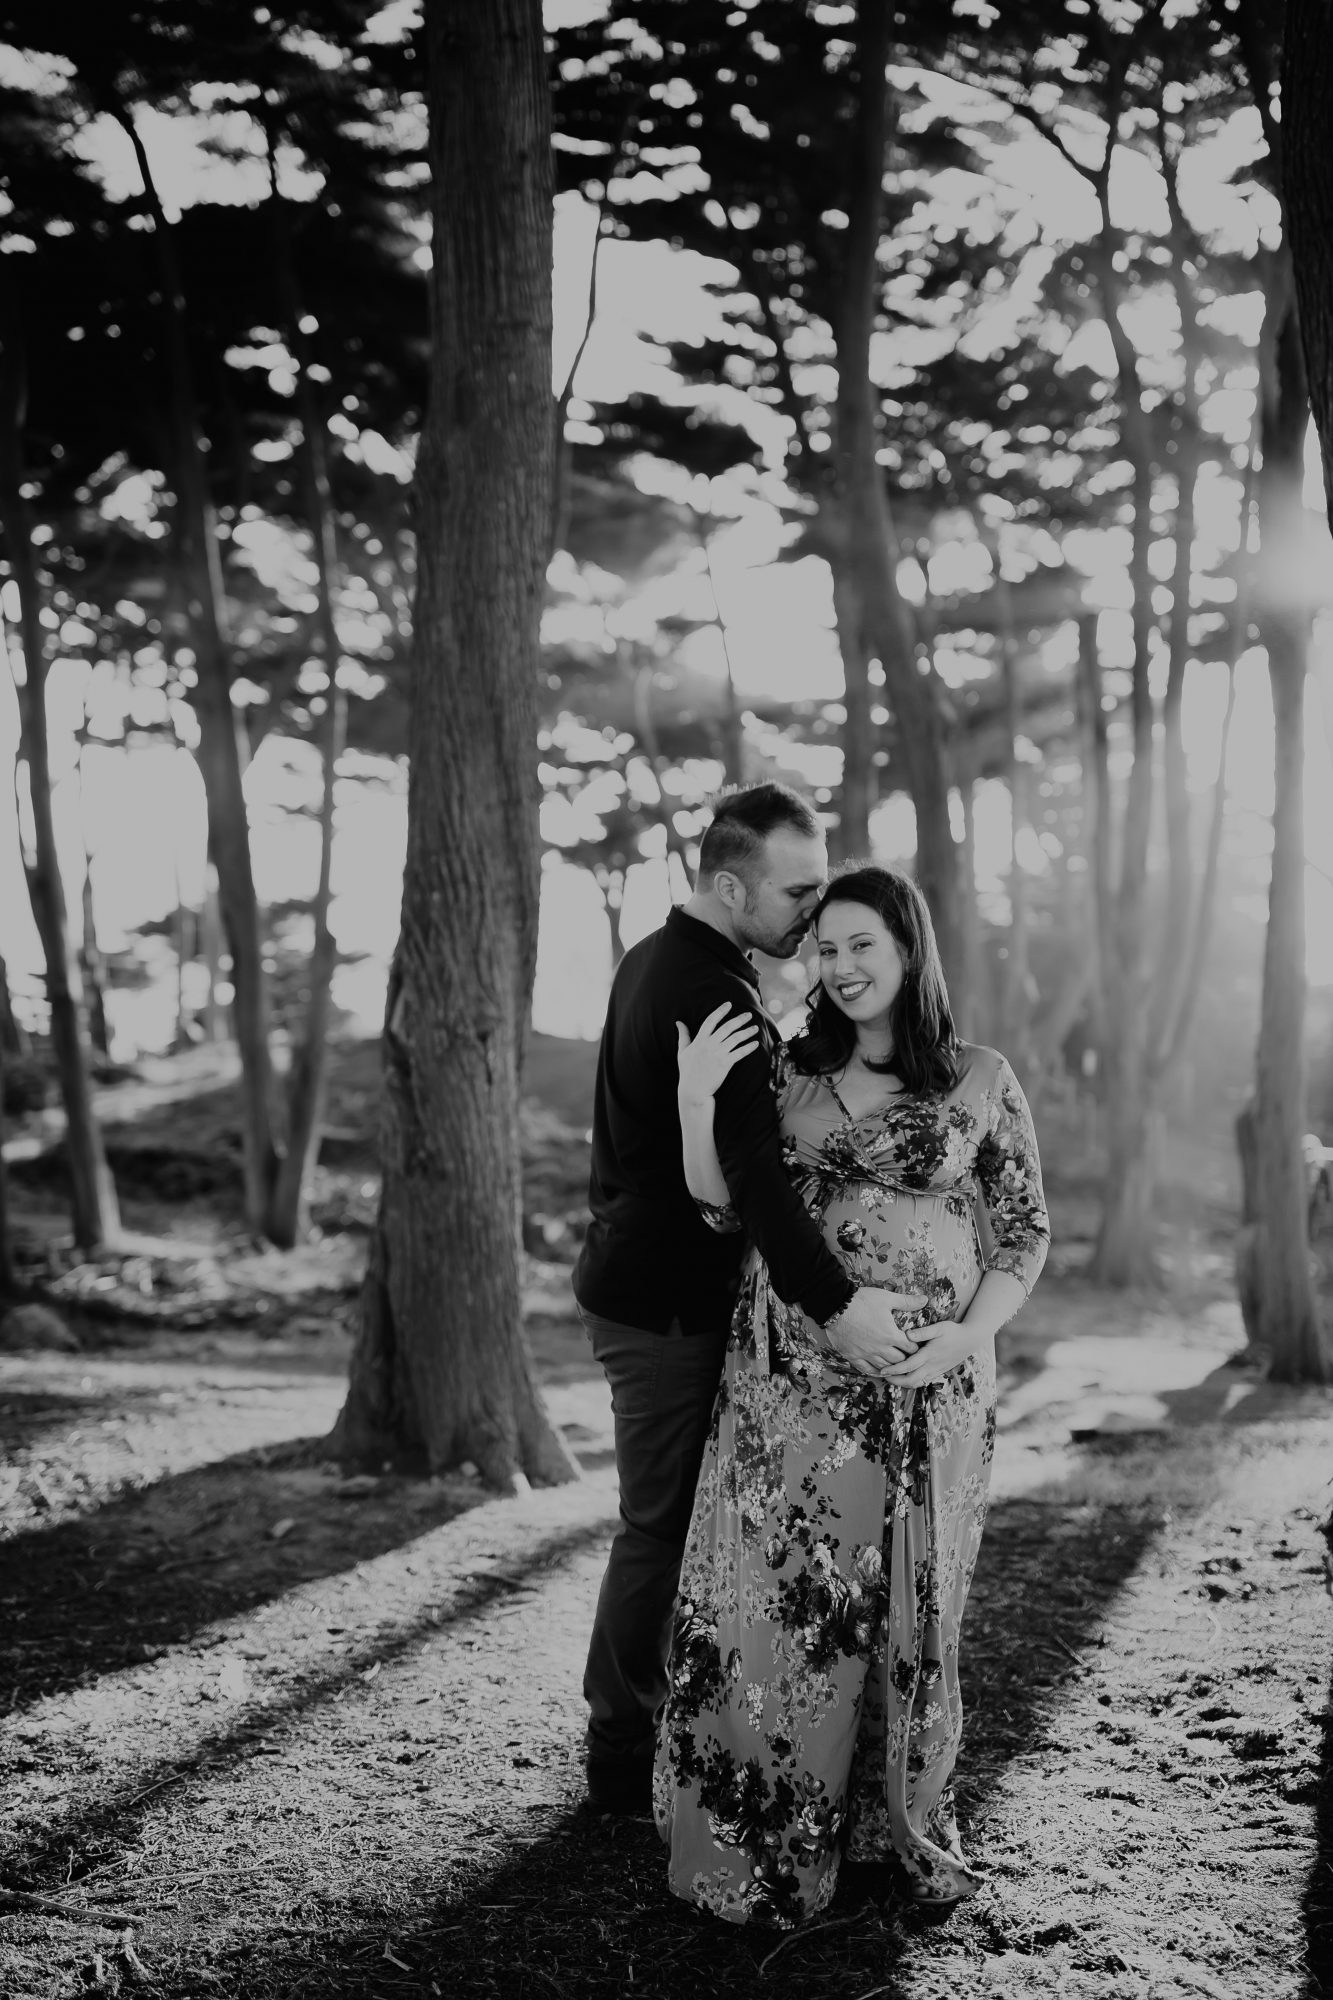 san-francisco-maternity-photographer - 6